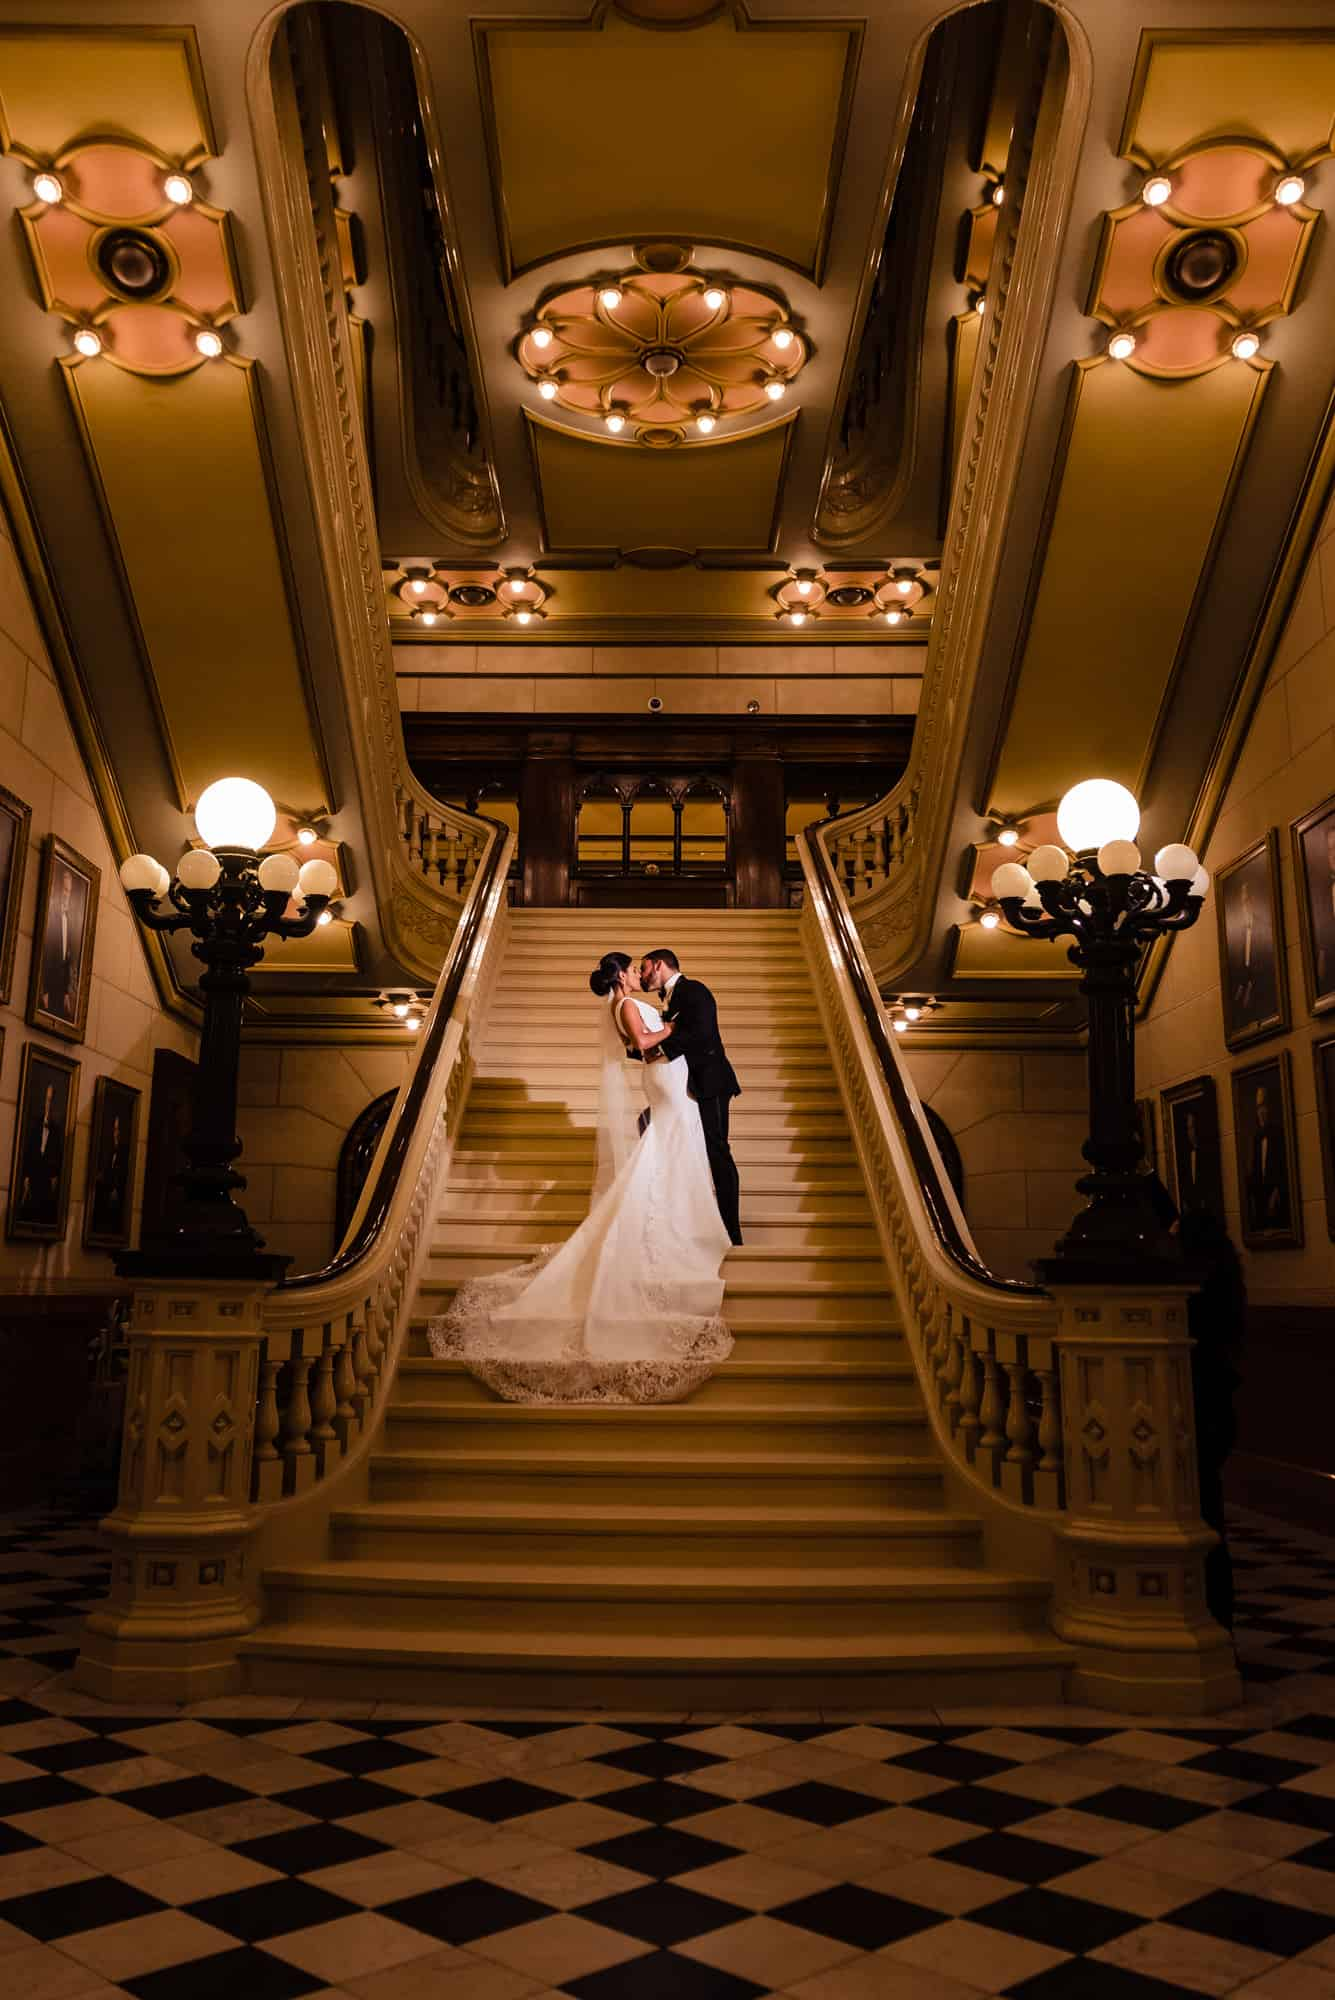 Bride and groom kiss on stairwell